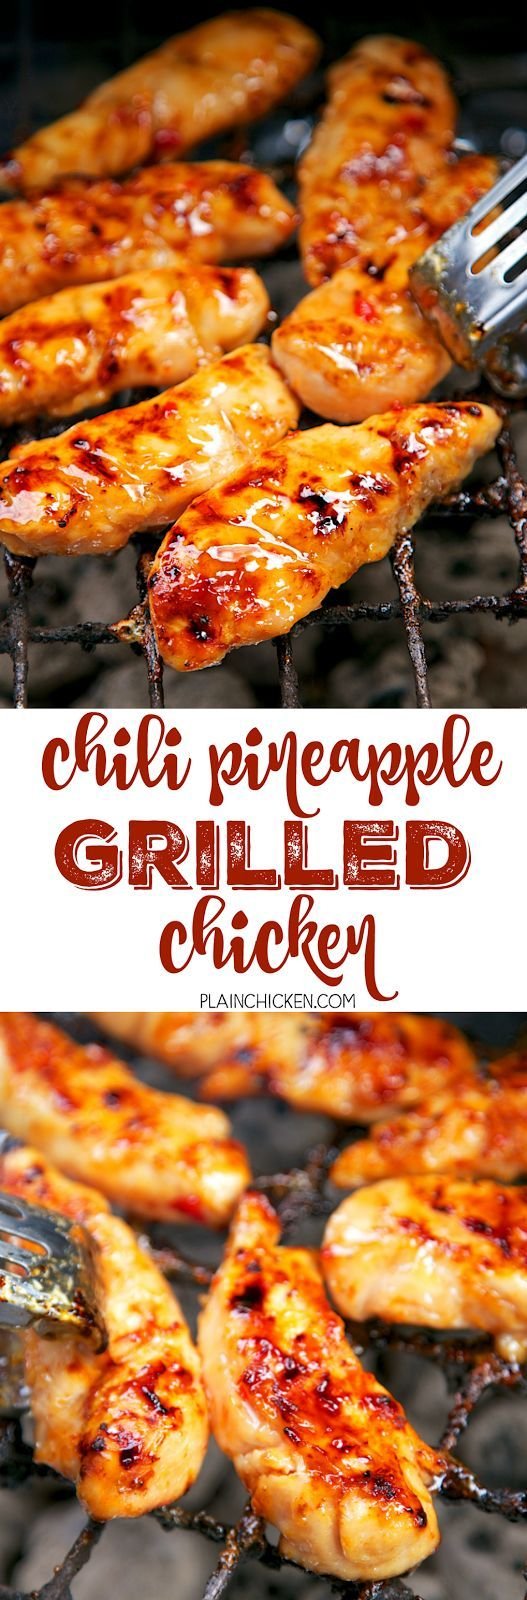 Chili Pineapple Grilled Chicken - only simple 4 ingredients! Chicken, chili sauce, pineapple juice and honey. TONS of great flavor!! We ate this chicken 2 days in a row! http://juicerblendercenter.com/category/juicer-reviews/